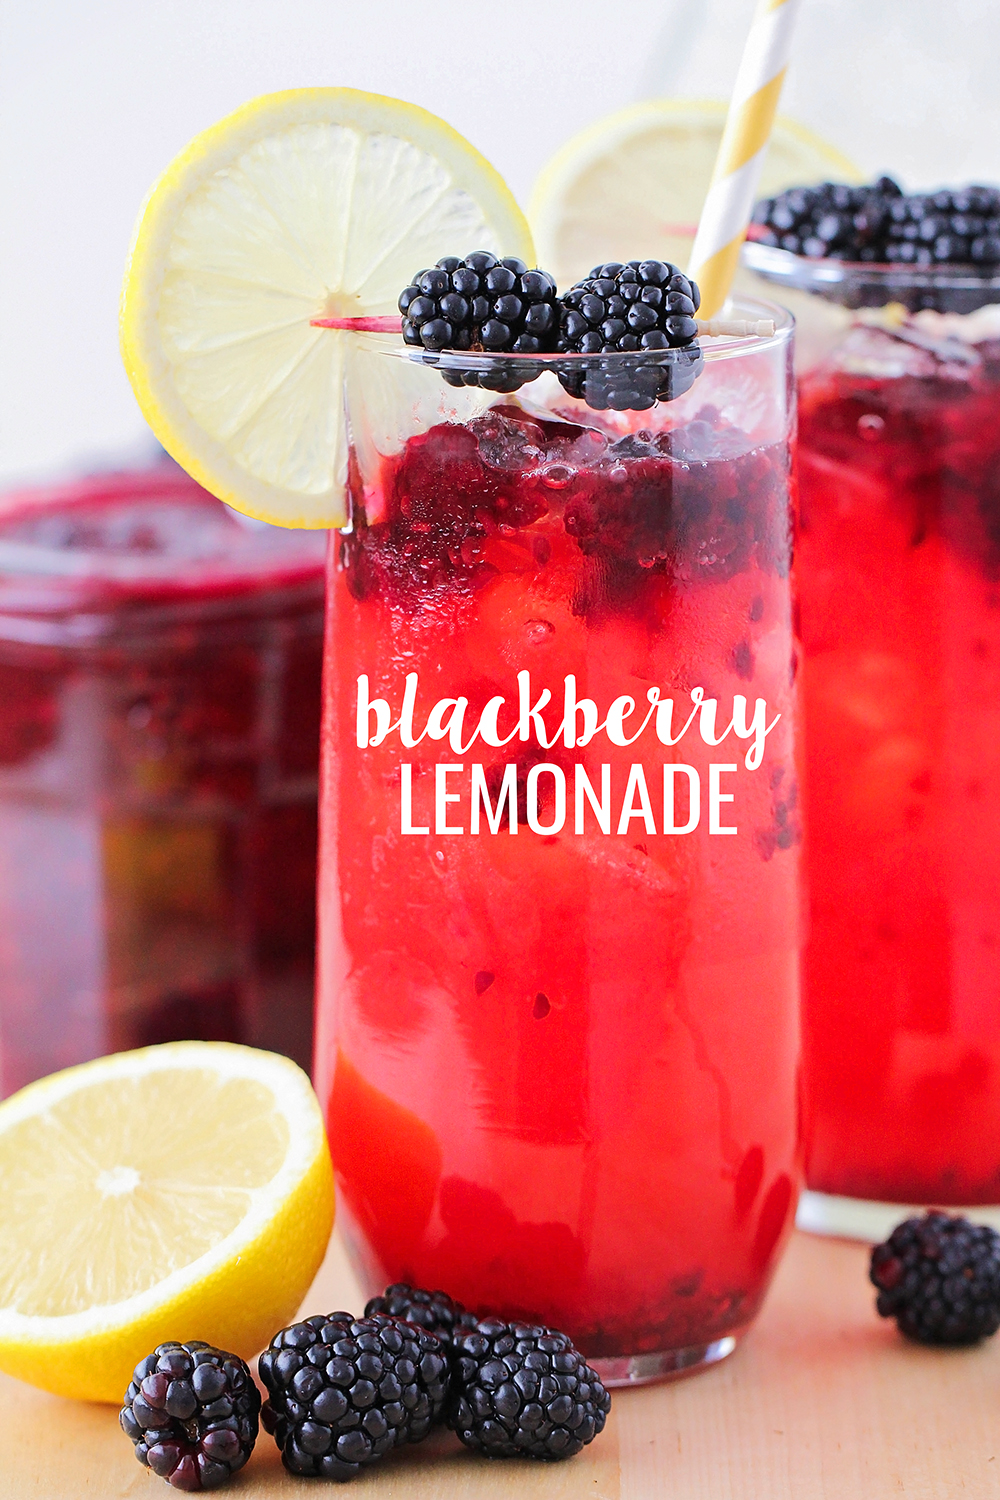 This sweet and refreshing blackberry lemonade is so easy to make at home!